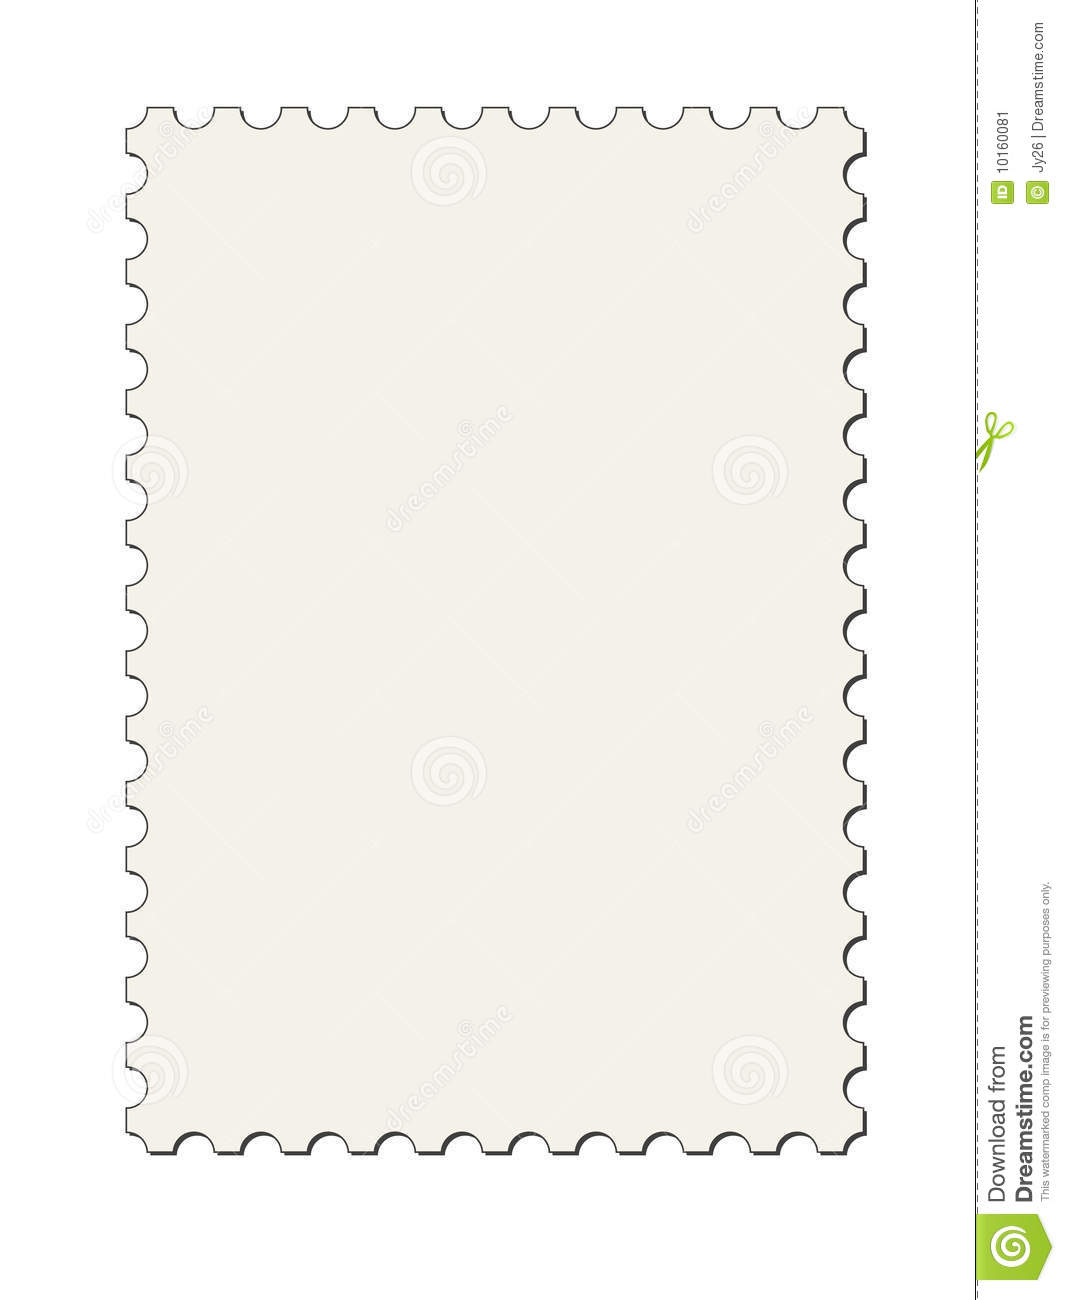 Portait Postage Stamp Border For Design